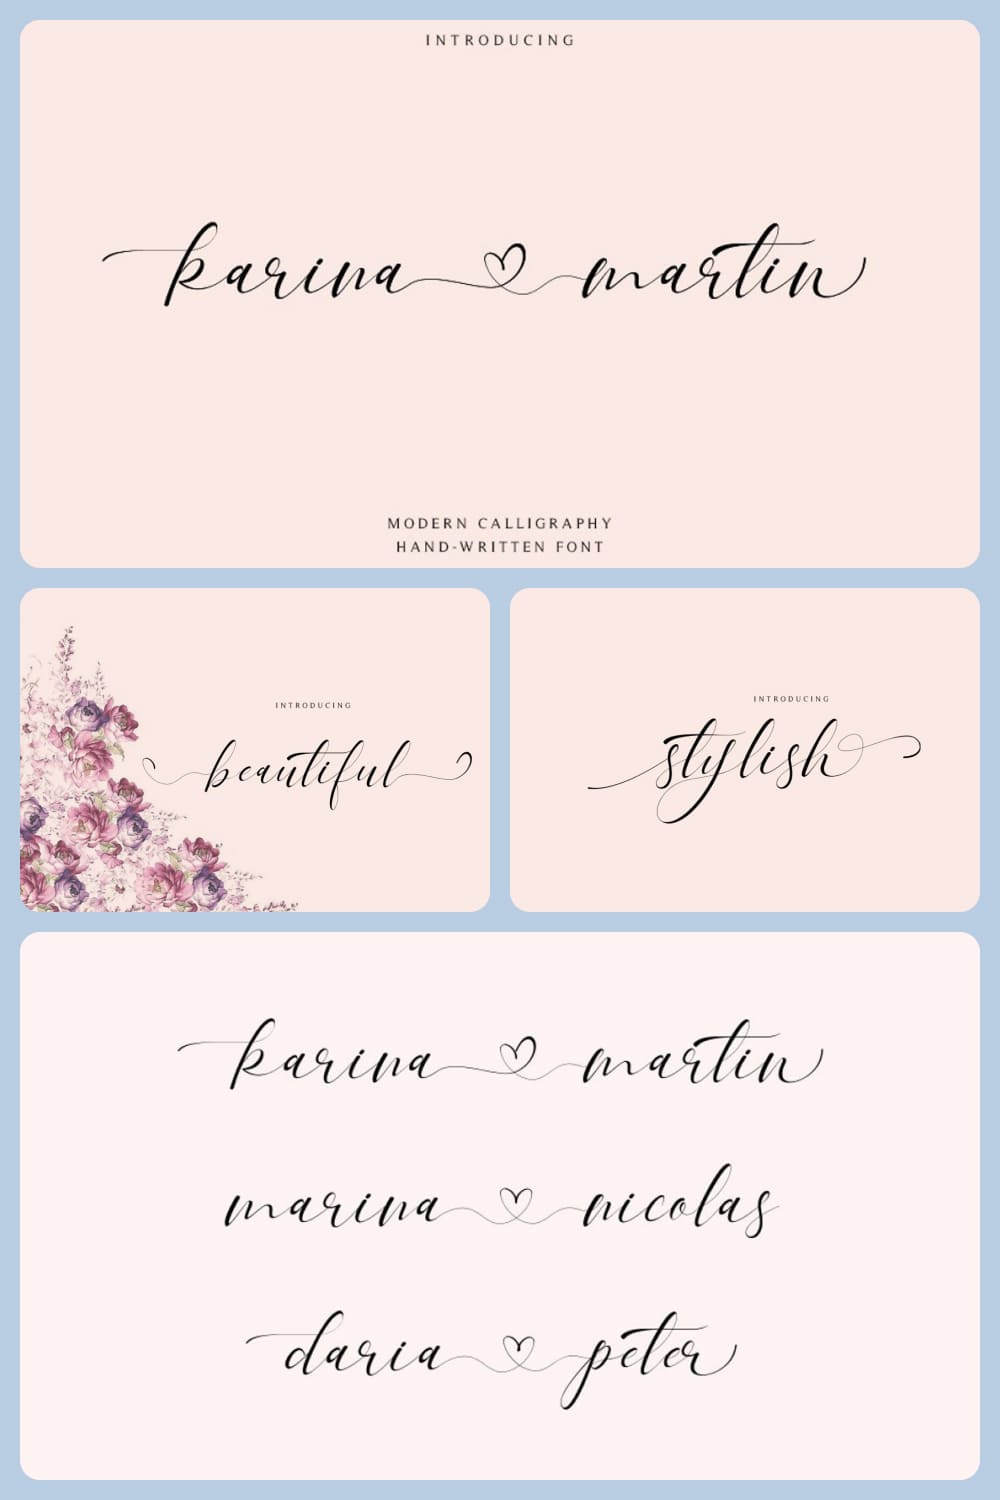 Thin italic typeface will perfectly complement a wedding card or invitation.